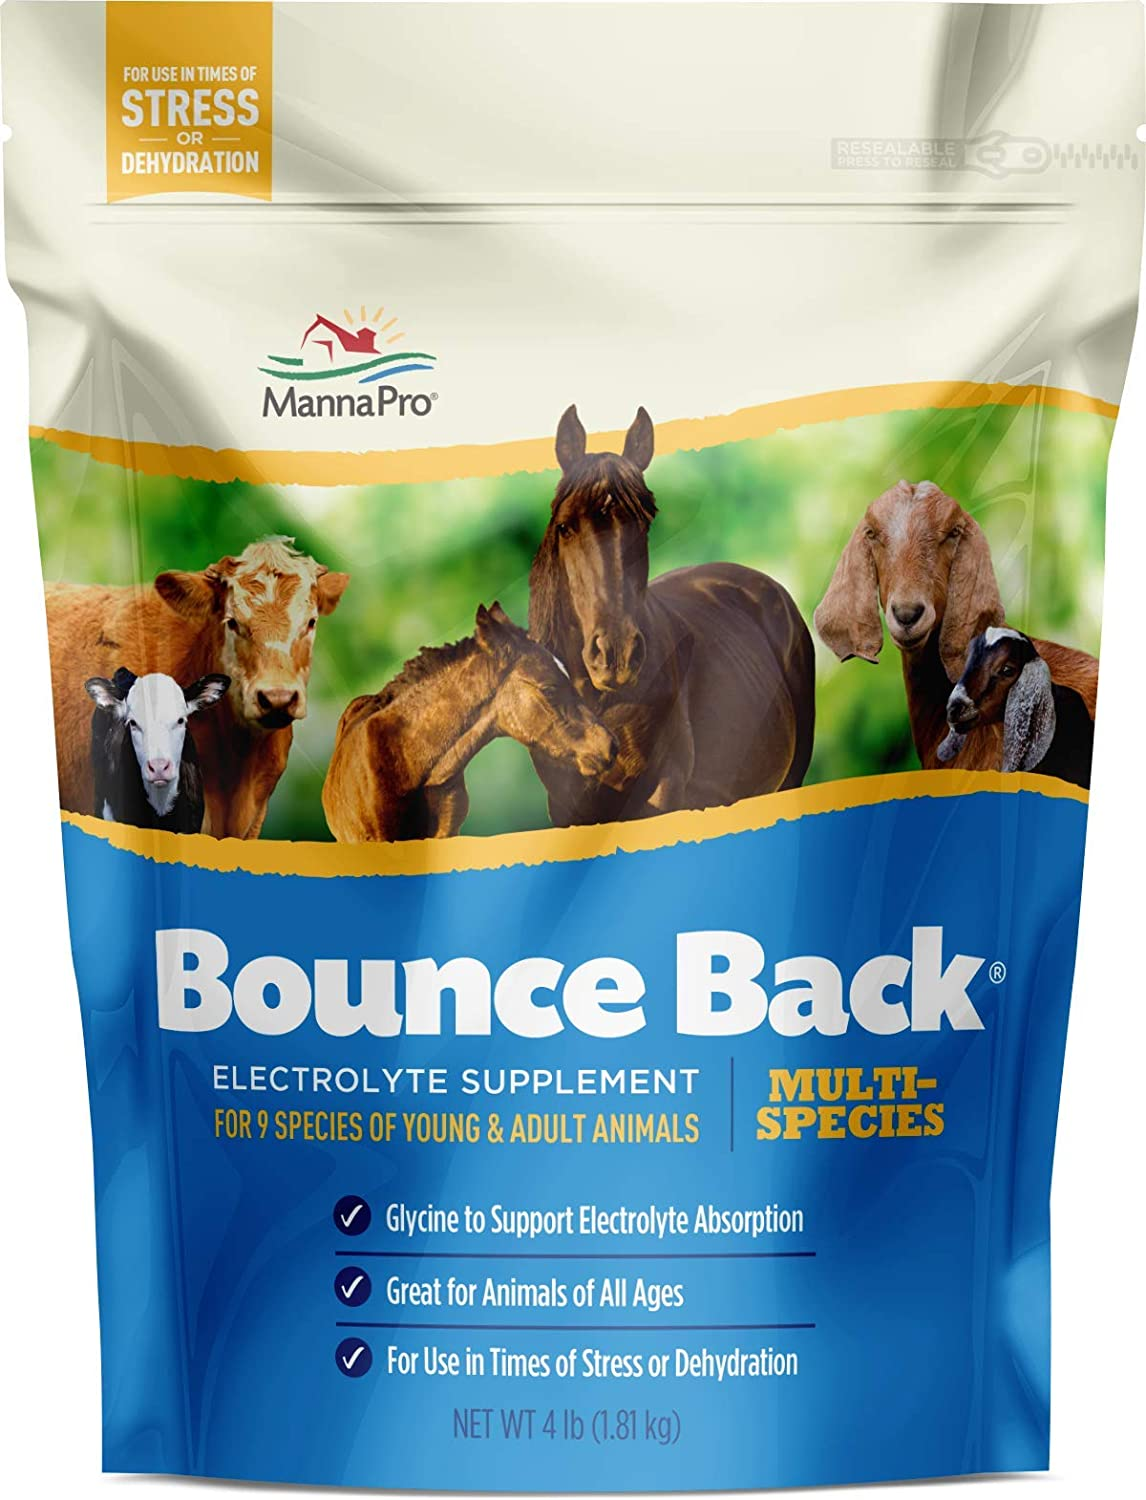 Manna Pro Bounce Back Multi-Species Electrolyte Supplement